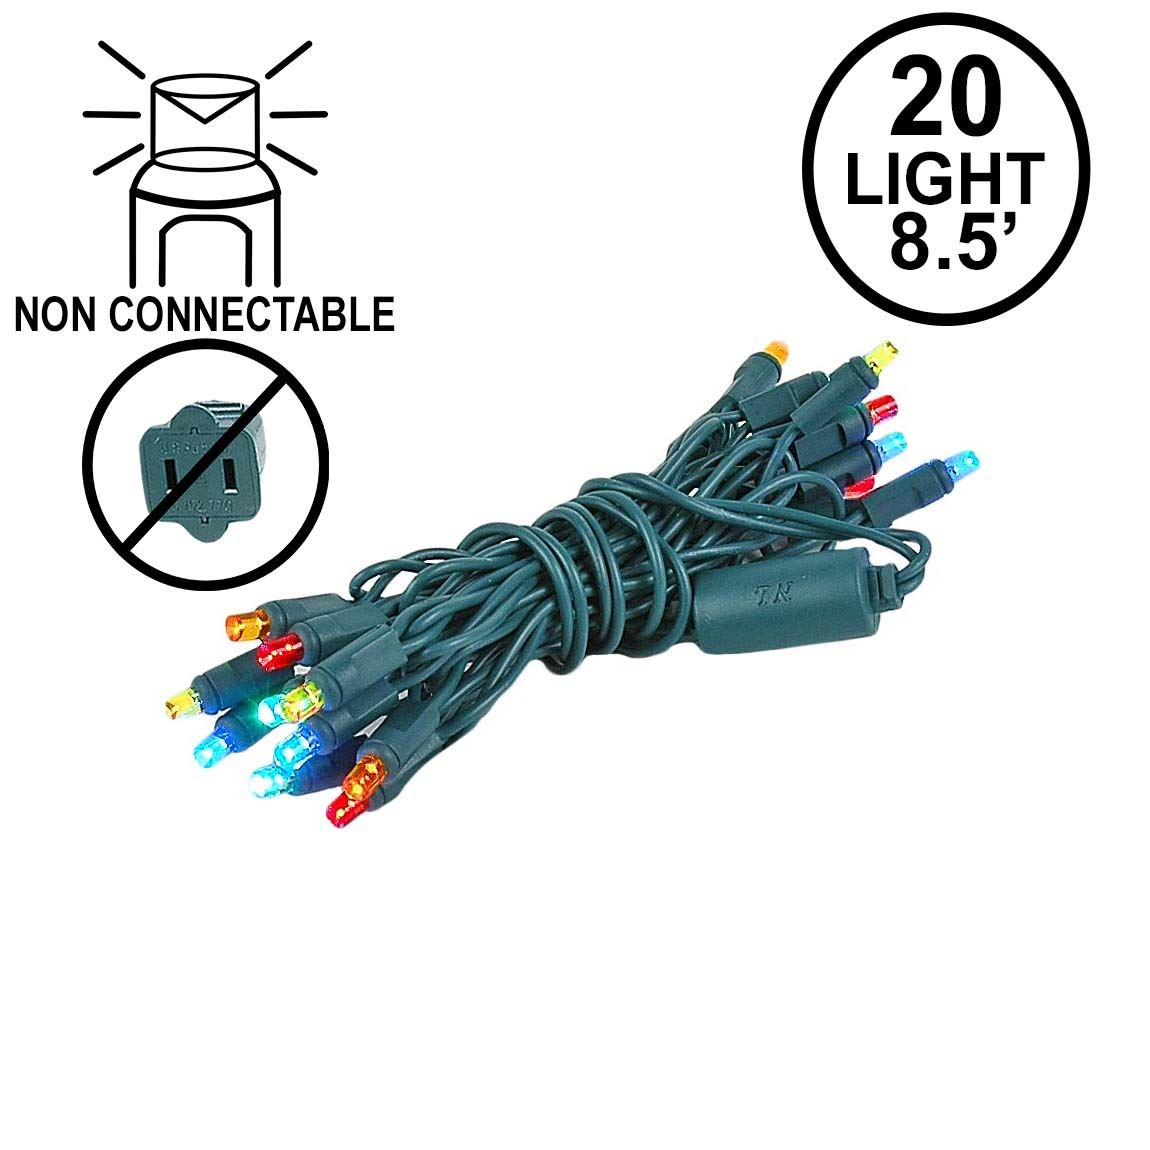 Craft Led Mini Christmas Lights Novelty Inc Wiring Leds In Parallel 20 Light Non Connectable Multi Green Wire